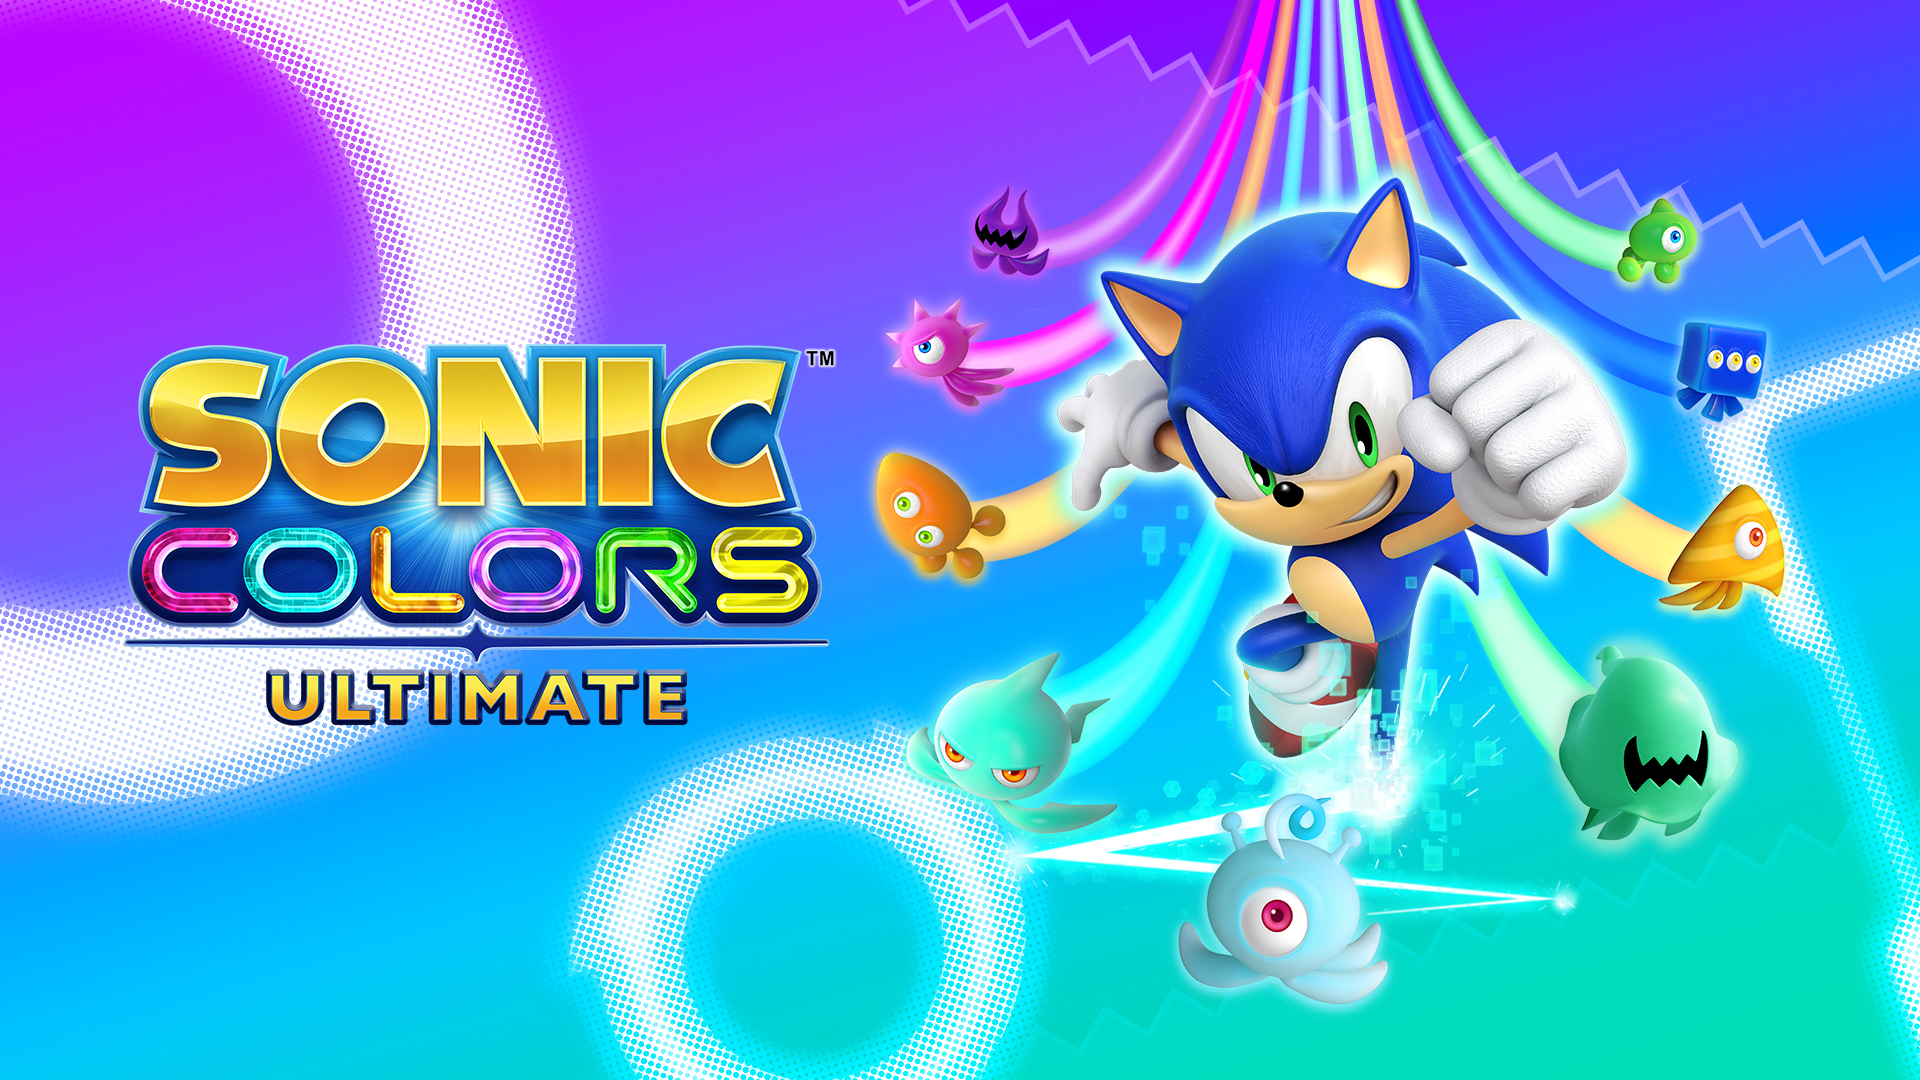 Sonic Colors Ultimate 2021 05 27 21 006